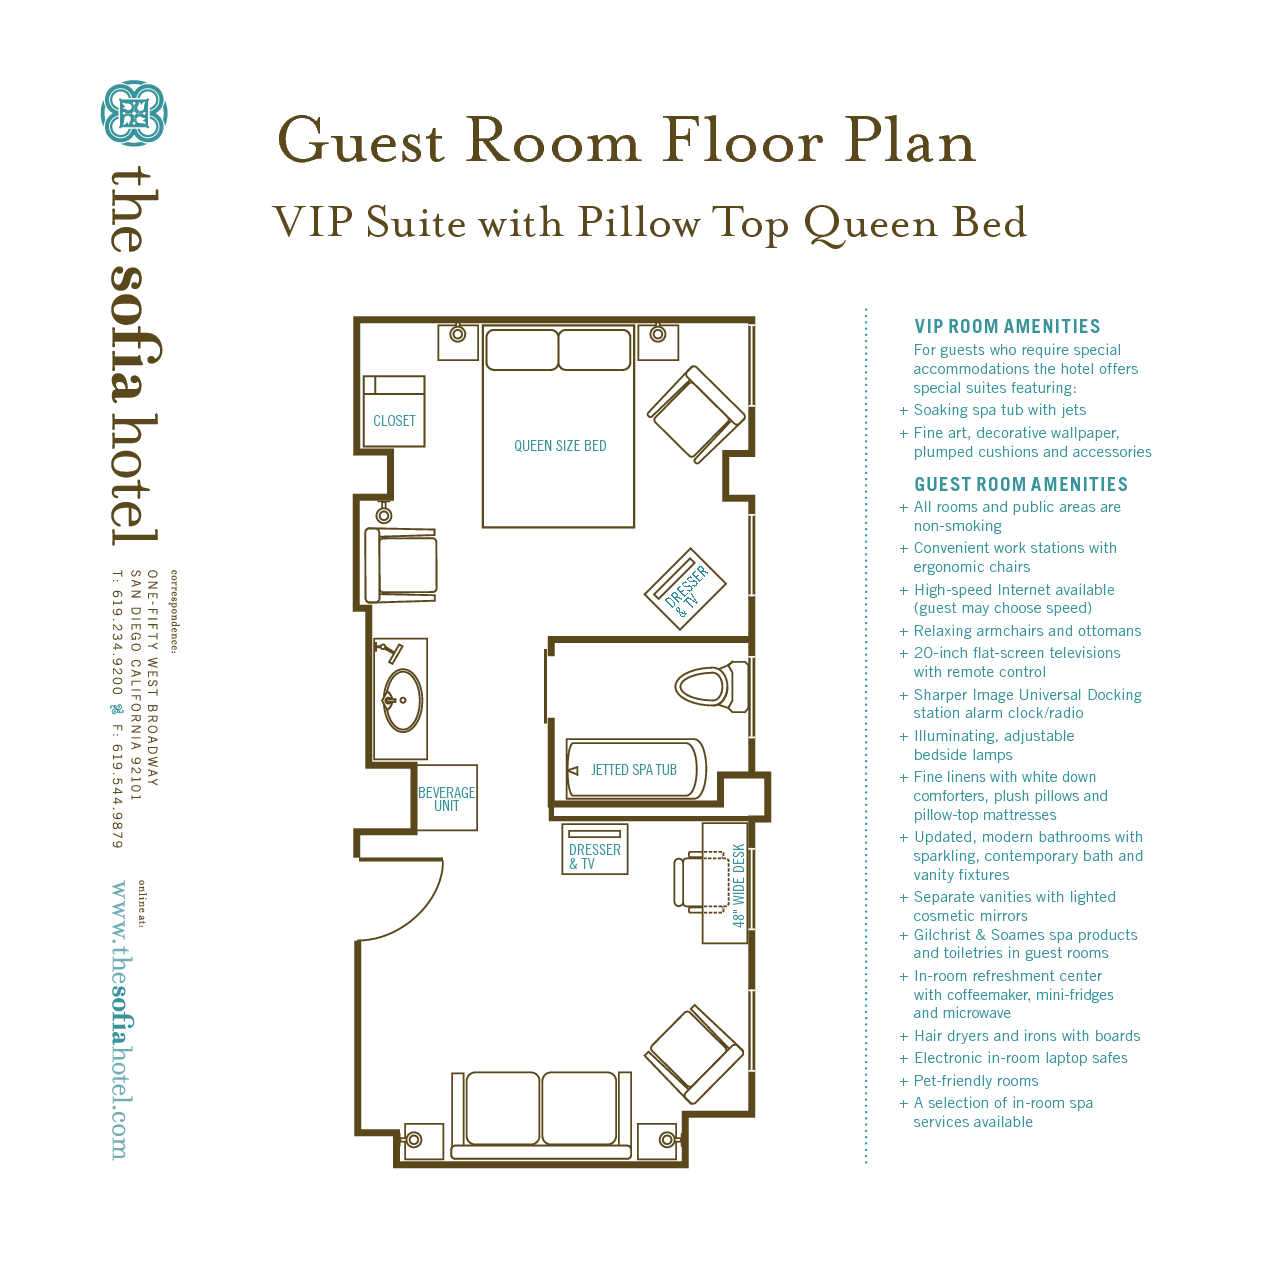 Guest Room Floor Plan  Floor plans, Hotel room design plan, Hotel